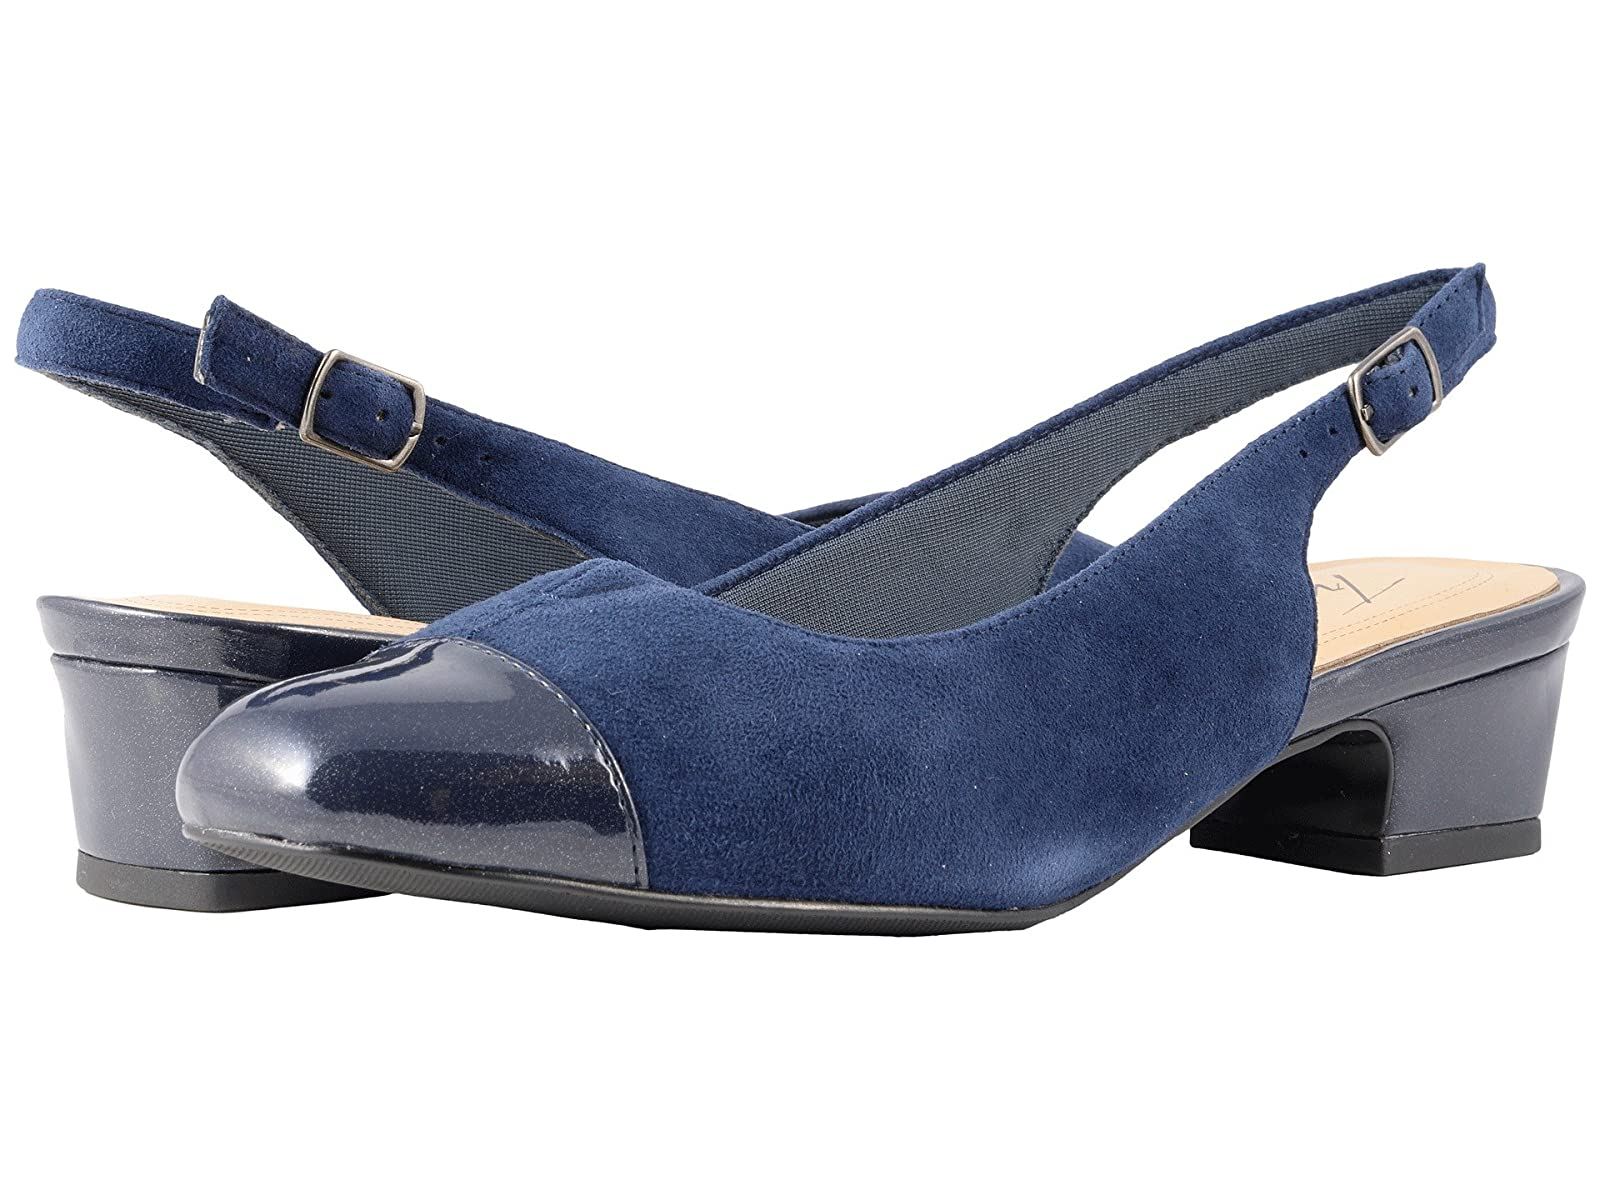 Trotters DeaCheap and distinctive eye-catching shoes